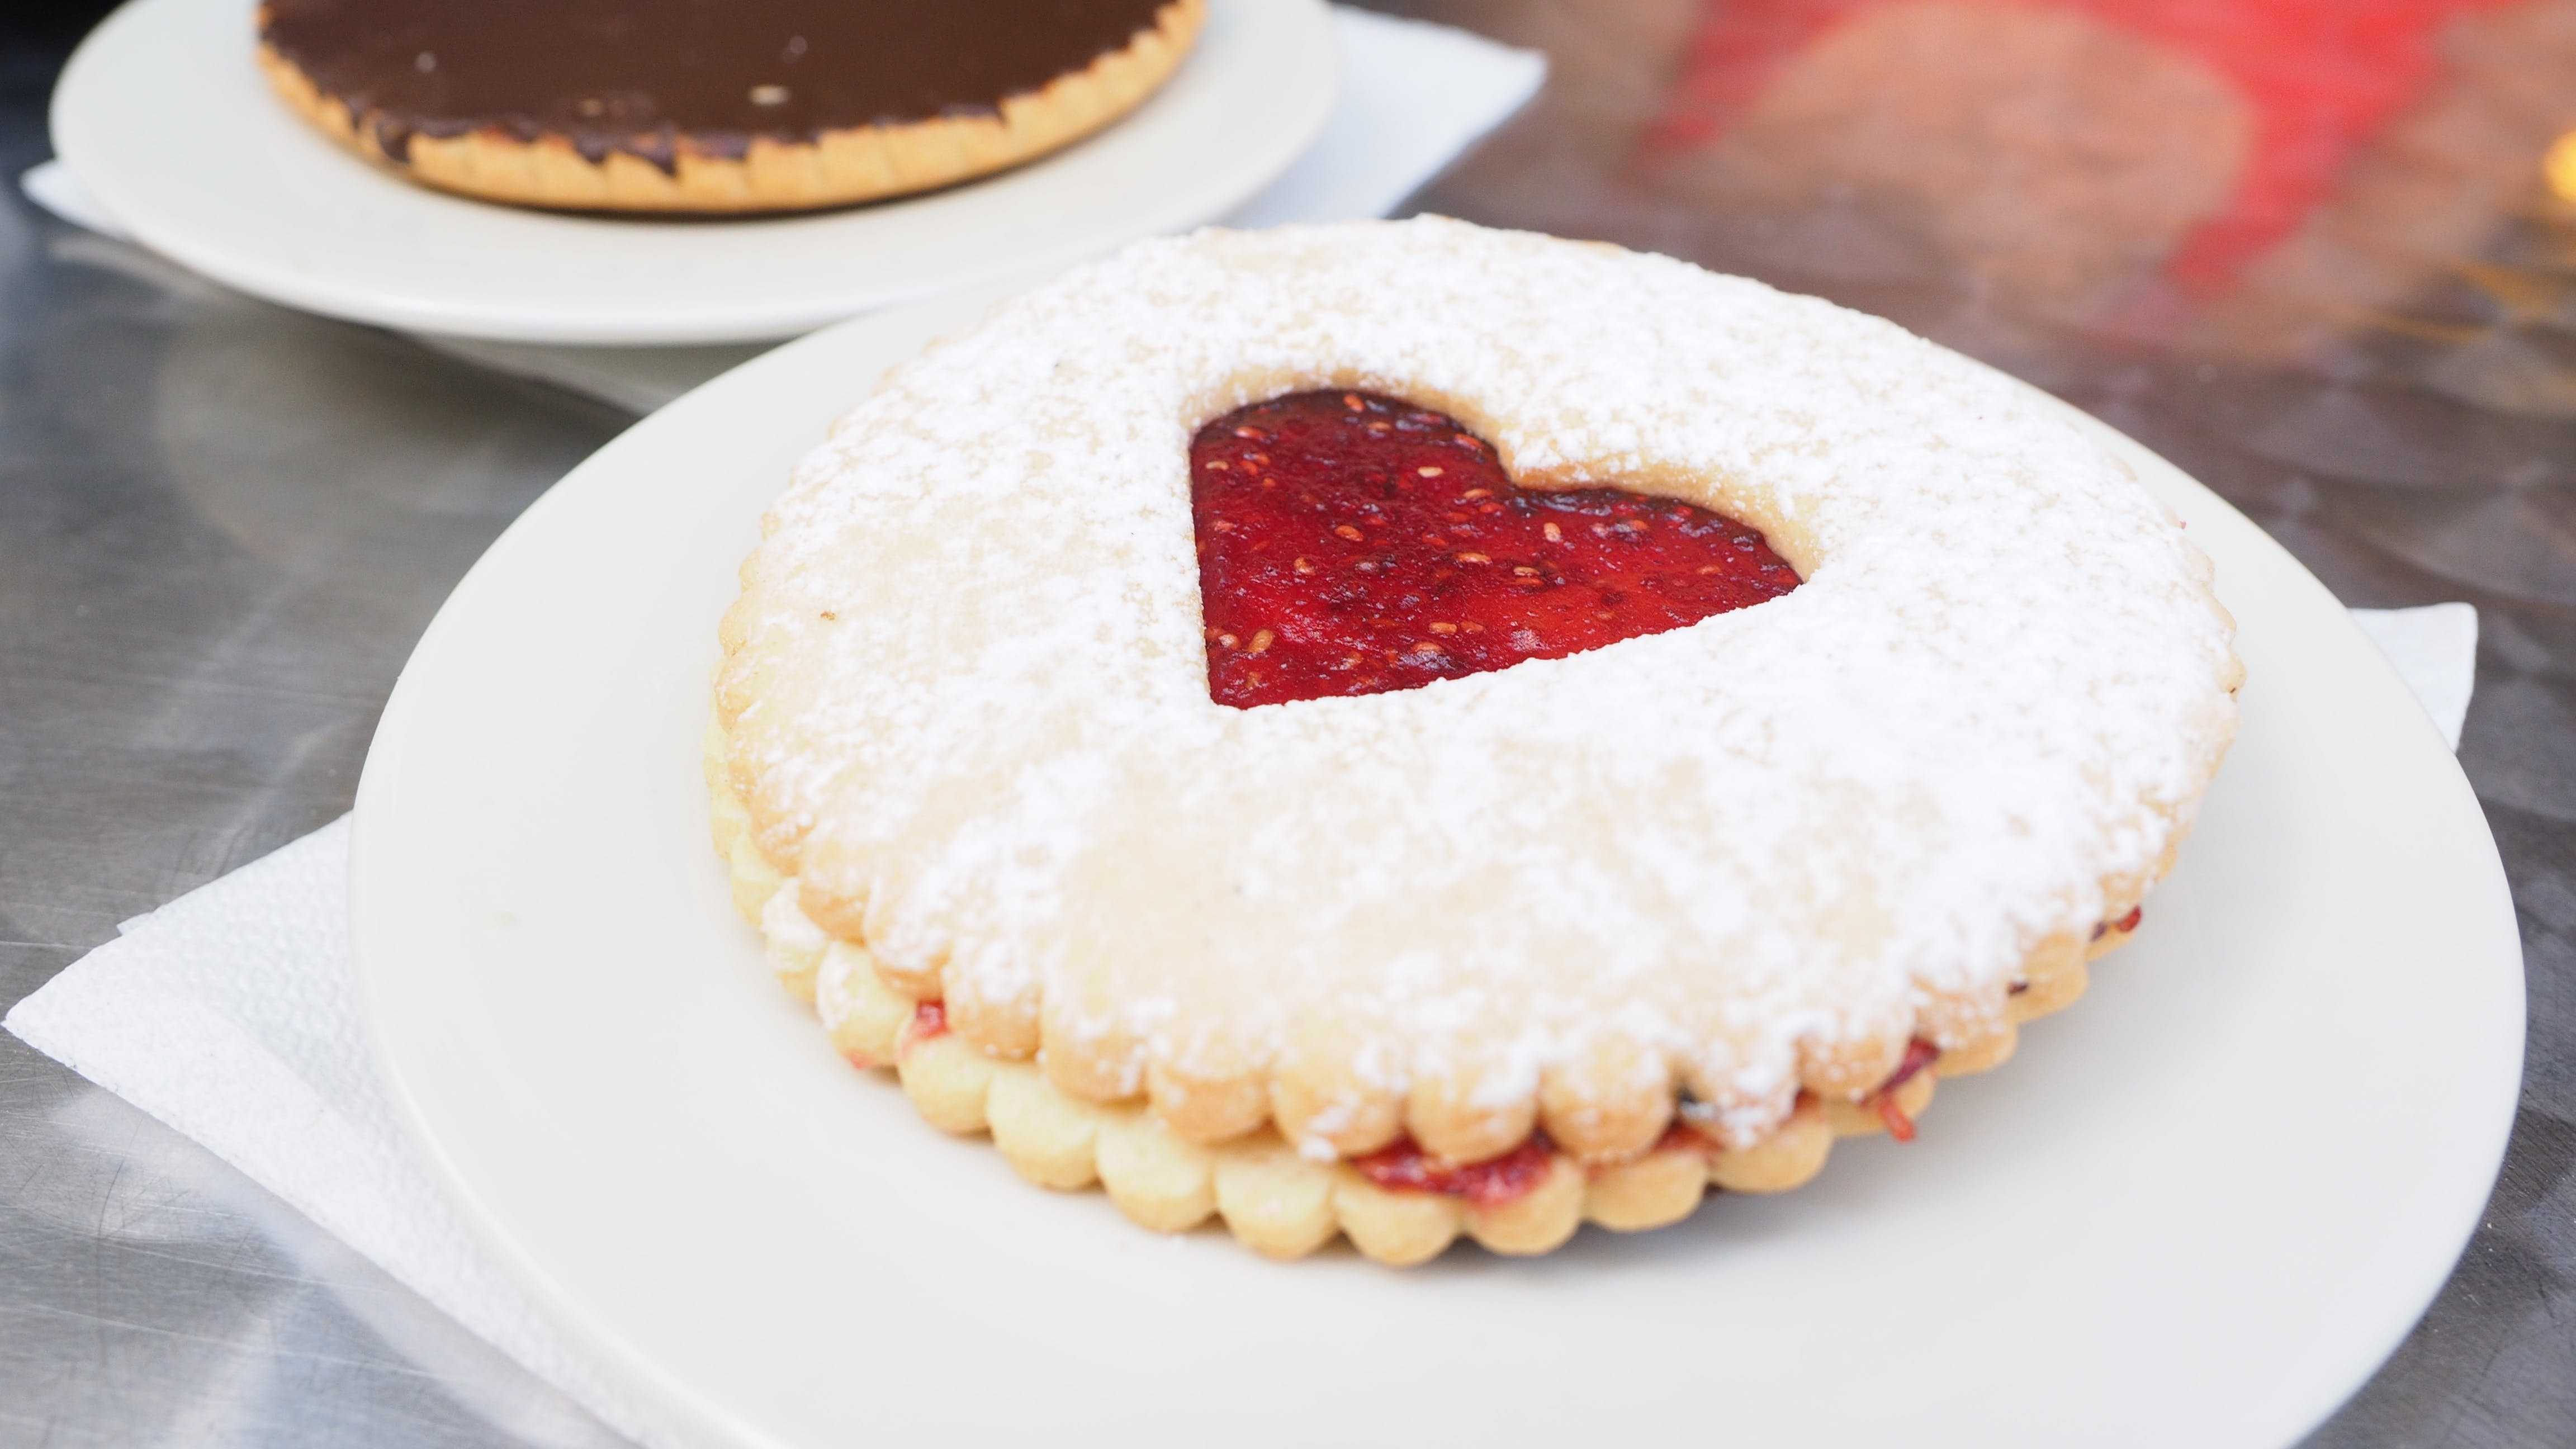 Round Biscuit With Heart Jelly in Center